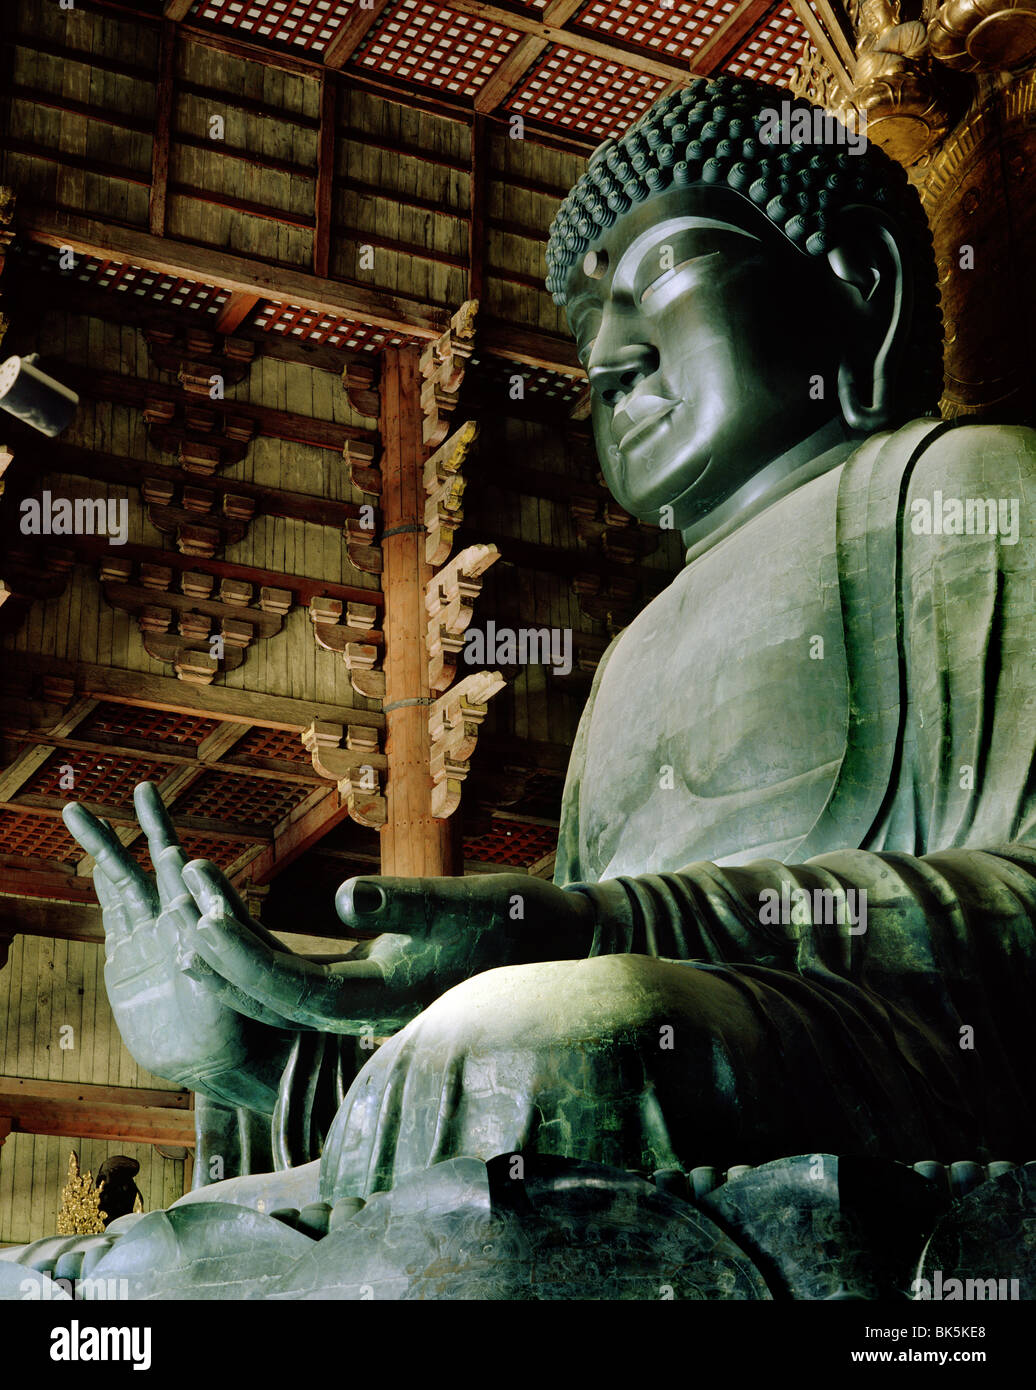 Todaiji (Great Eastern Temple), the world's largest wooden building, Nara, UNESCO World Heritage Site, Japan Stock Photo